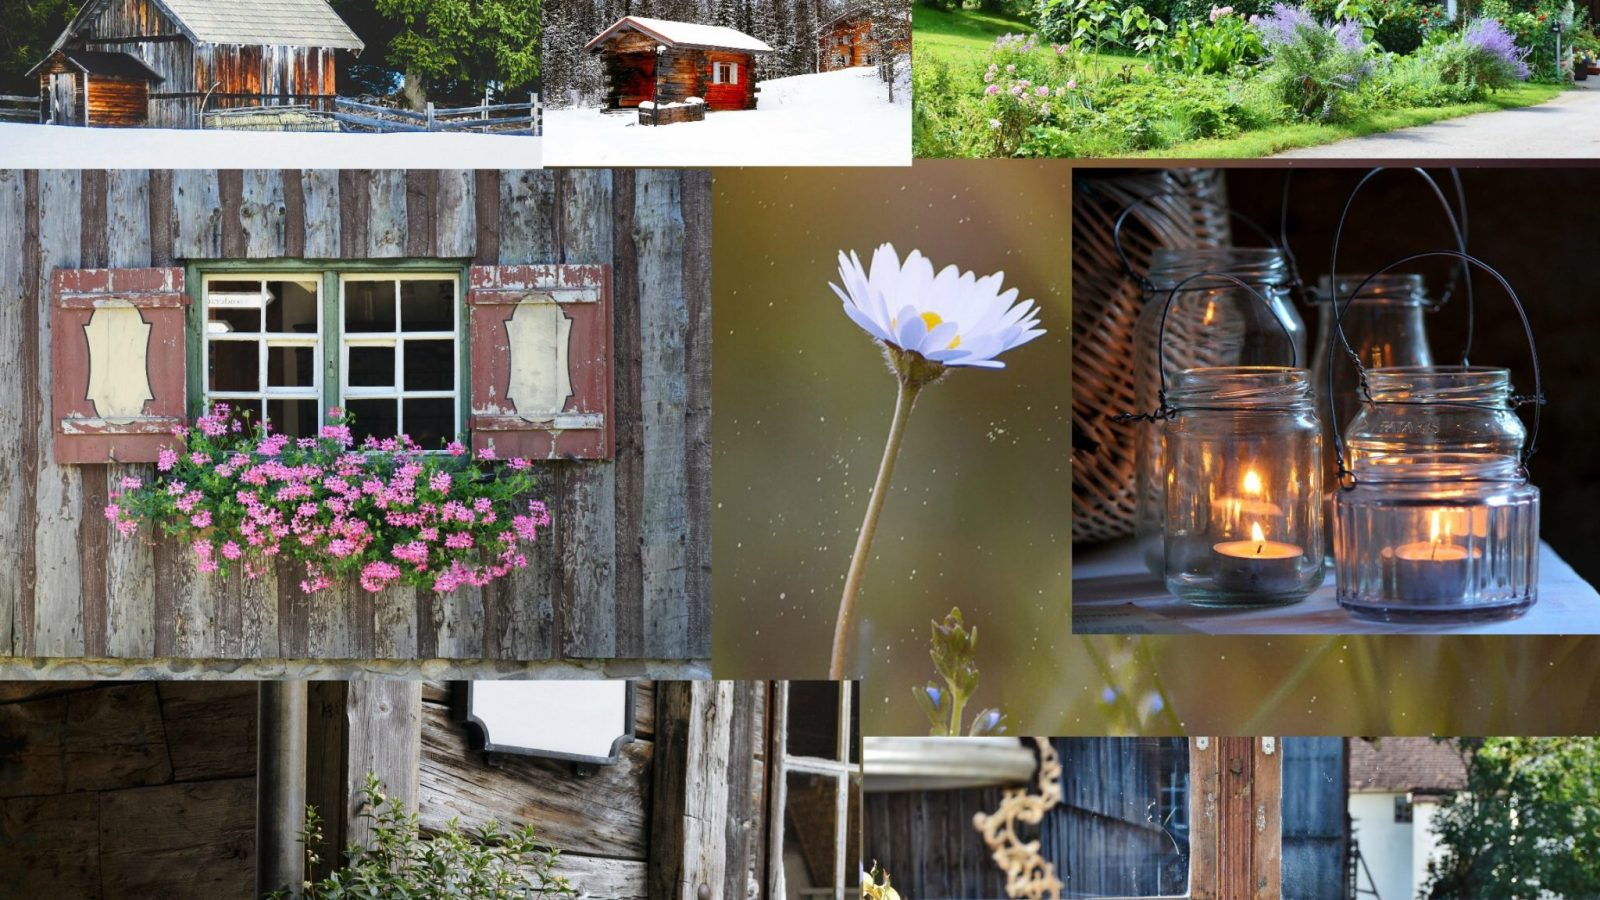 surprisinglives.net/escaping-to-rustic-country/